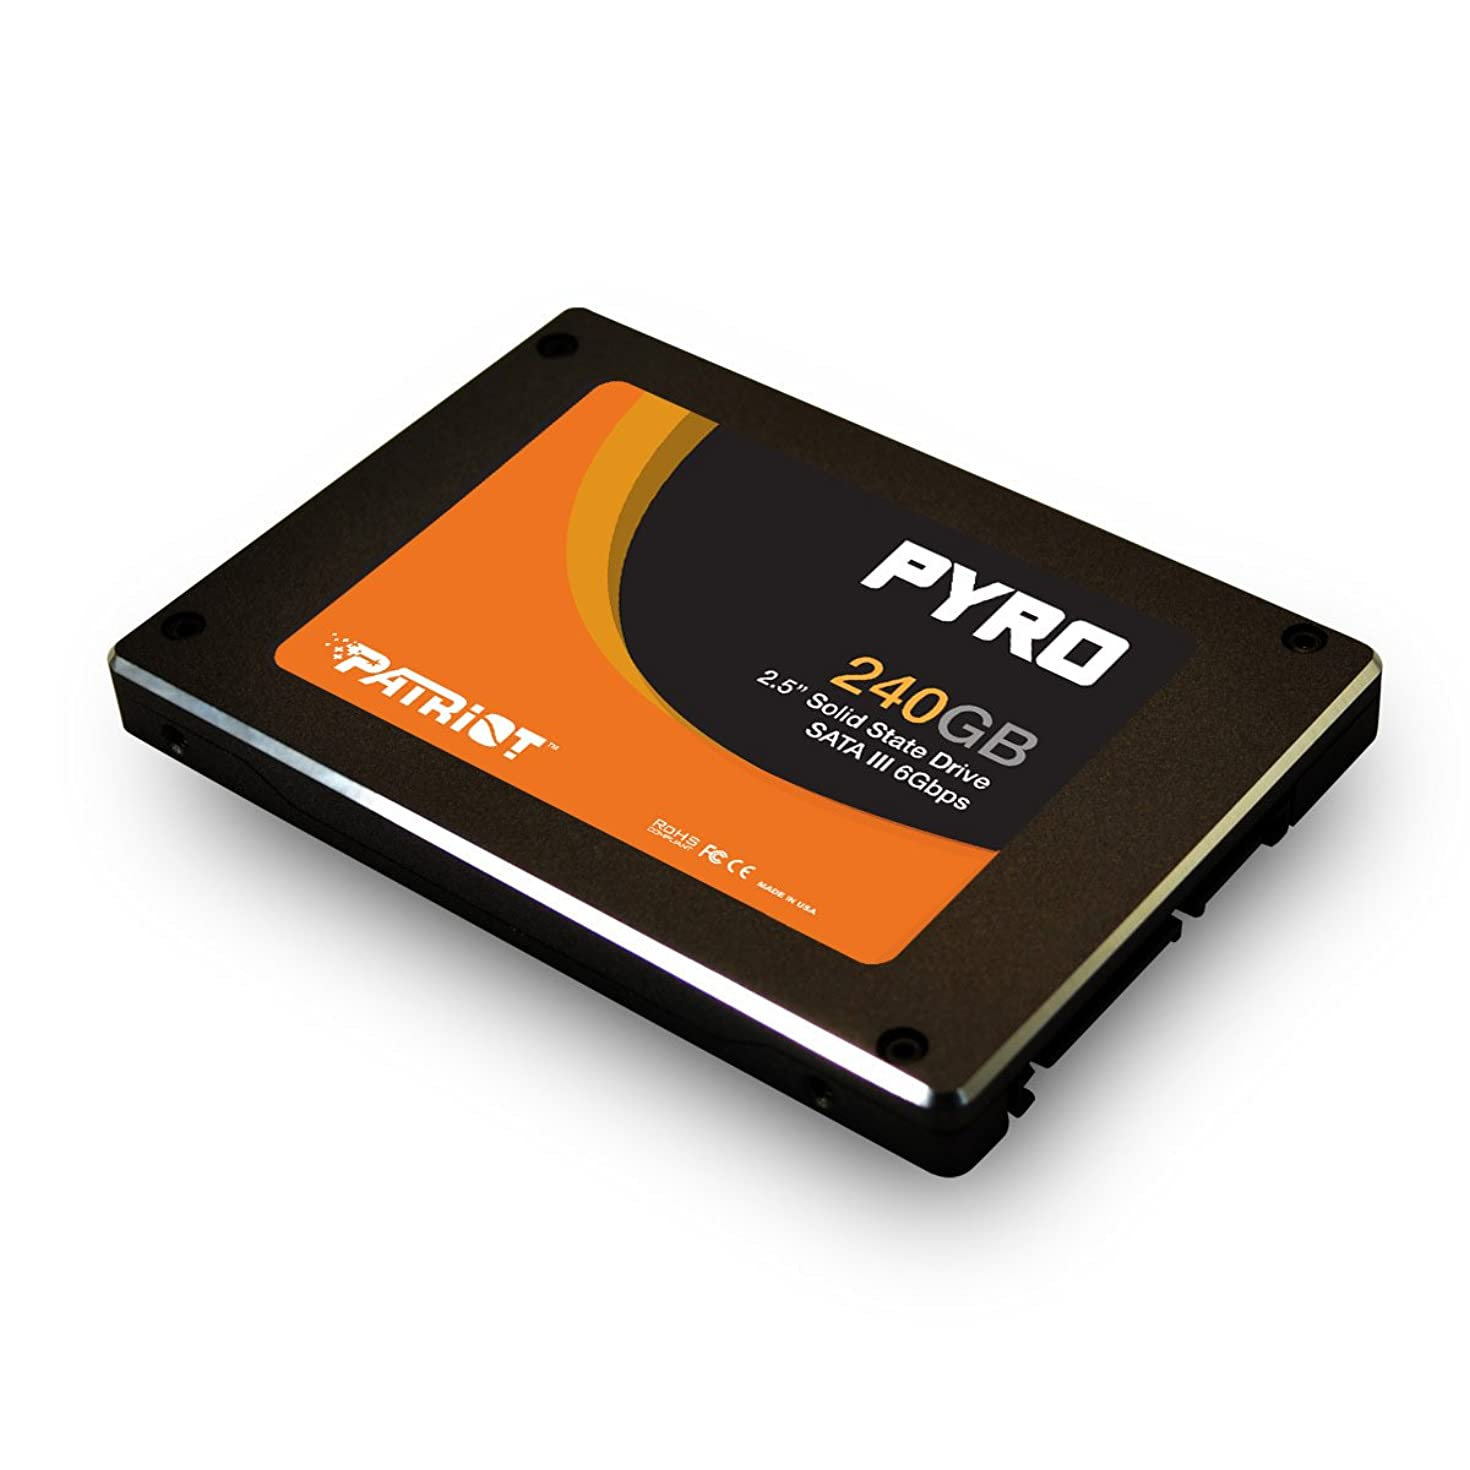 """Patriot Pyro 240GB SATA 3 2.5"""" SSD - With Transfer Speeds of Up-To 550 MB/s read and 530 MB/s write - 85,000 IOPS"""